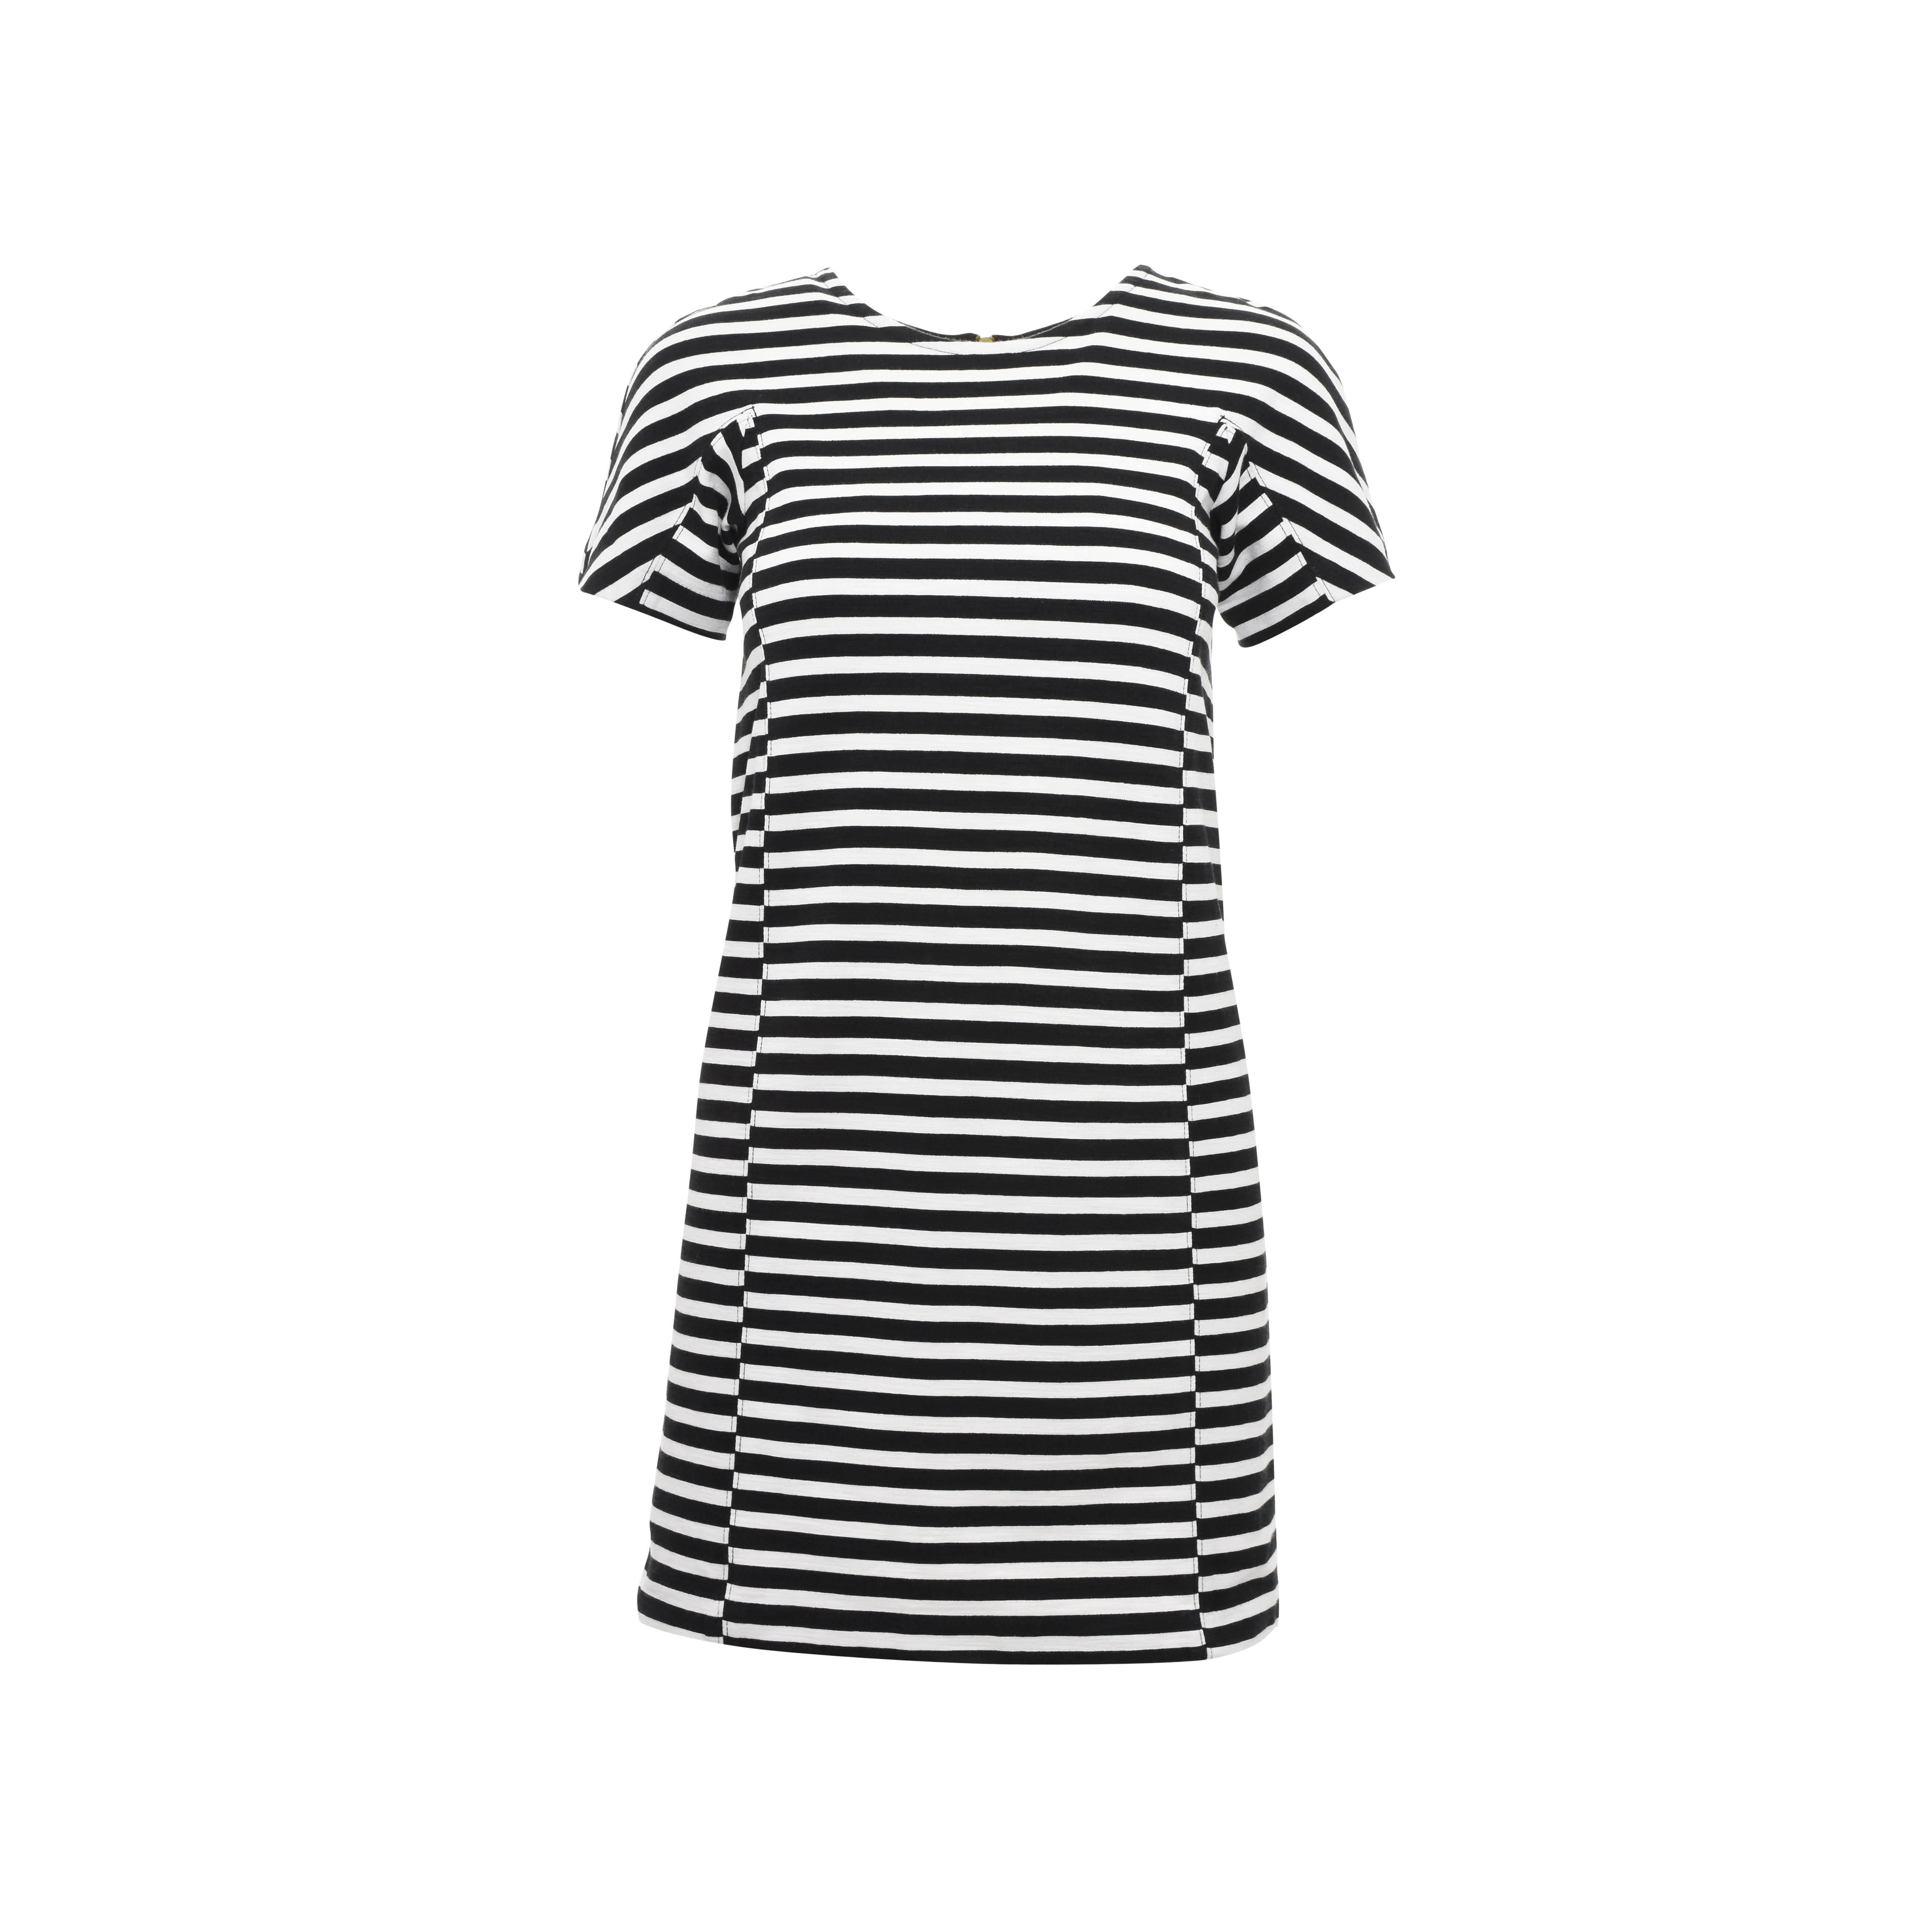 f881cc8b64b3 Authentic Second Hand J. Crew Striped T-shirt Dress (PSS-374-00002 ...